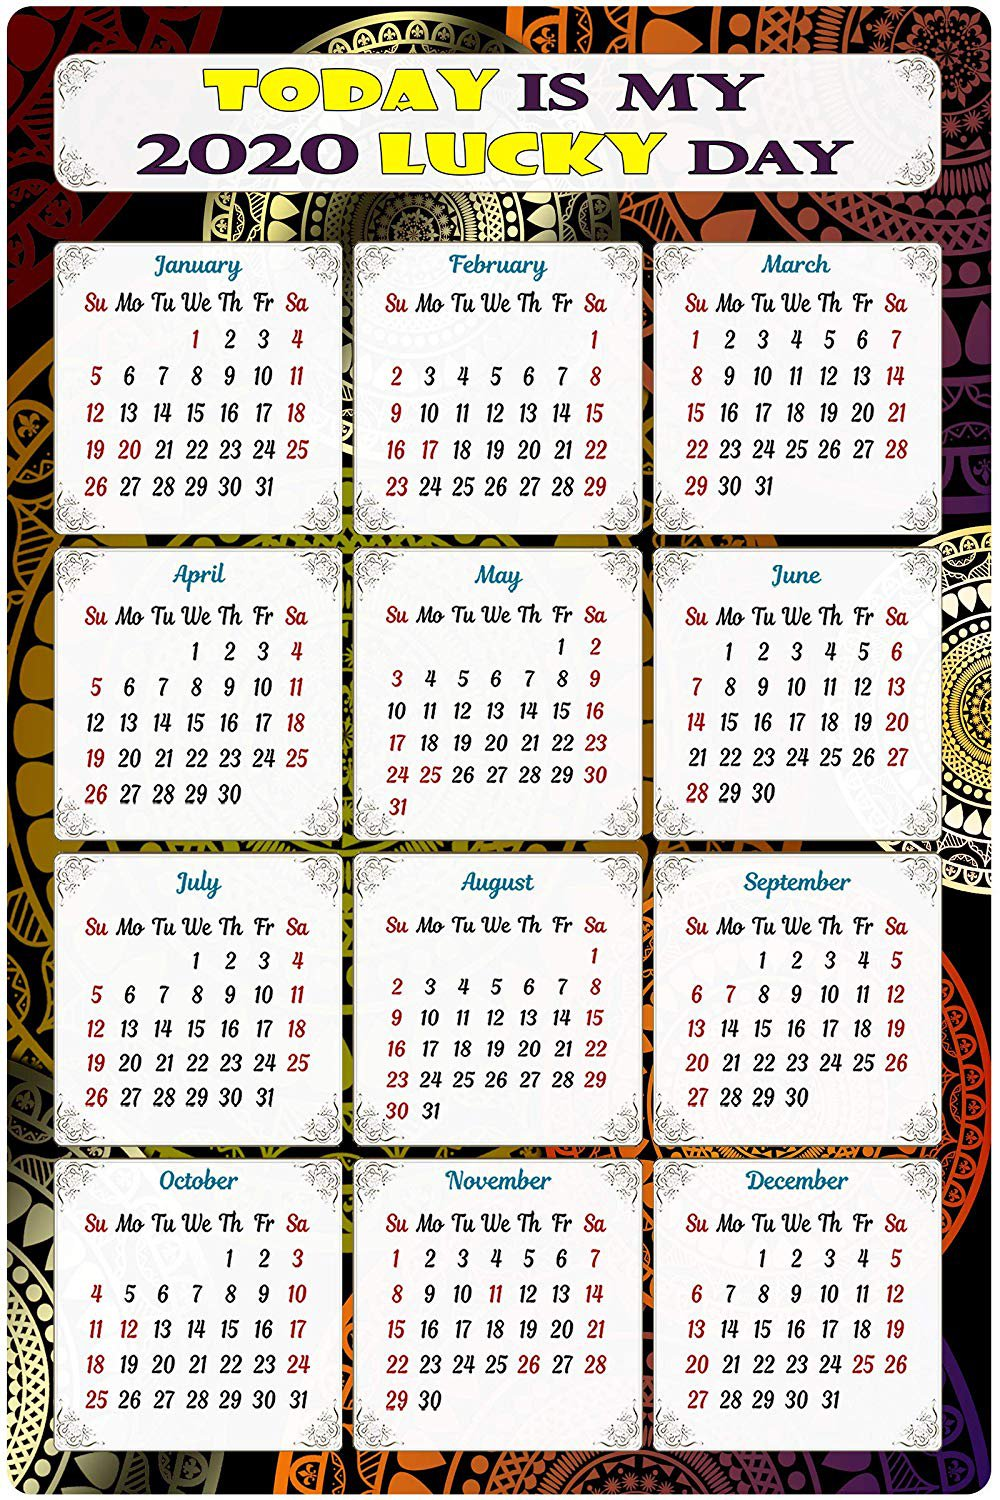 2020 Magnetic Calendar - Calendar Magnets - Today is My Lucky Day - Edition #TN07